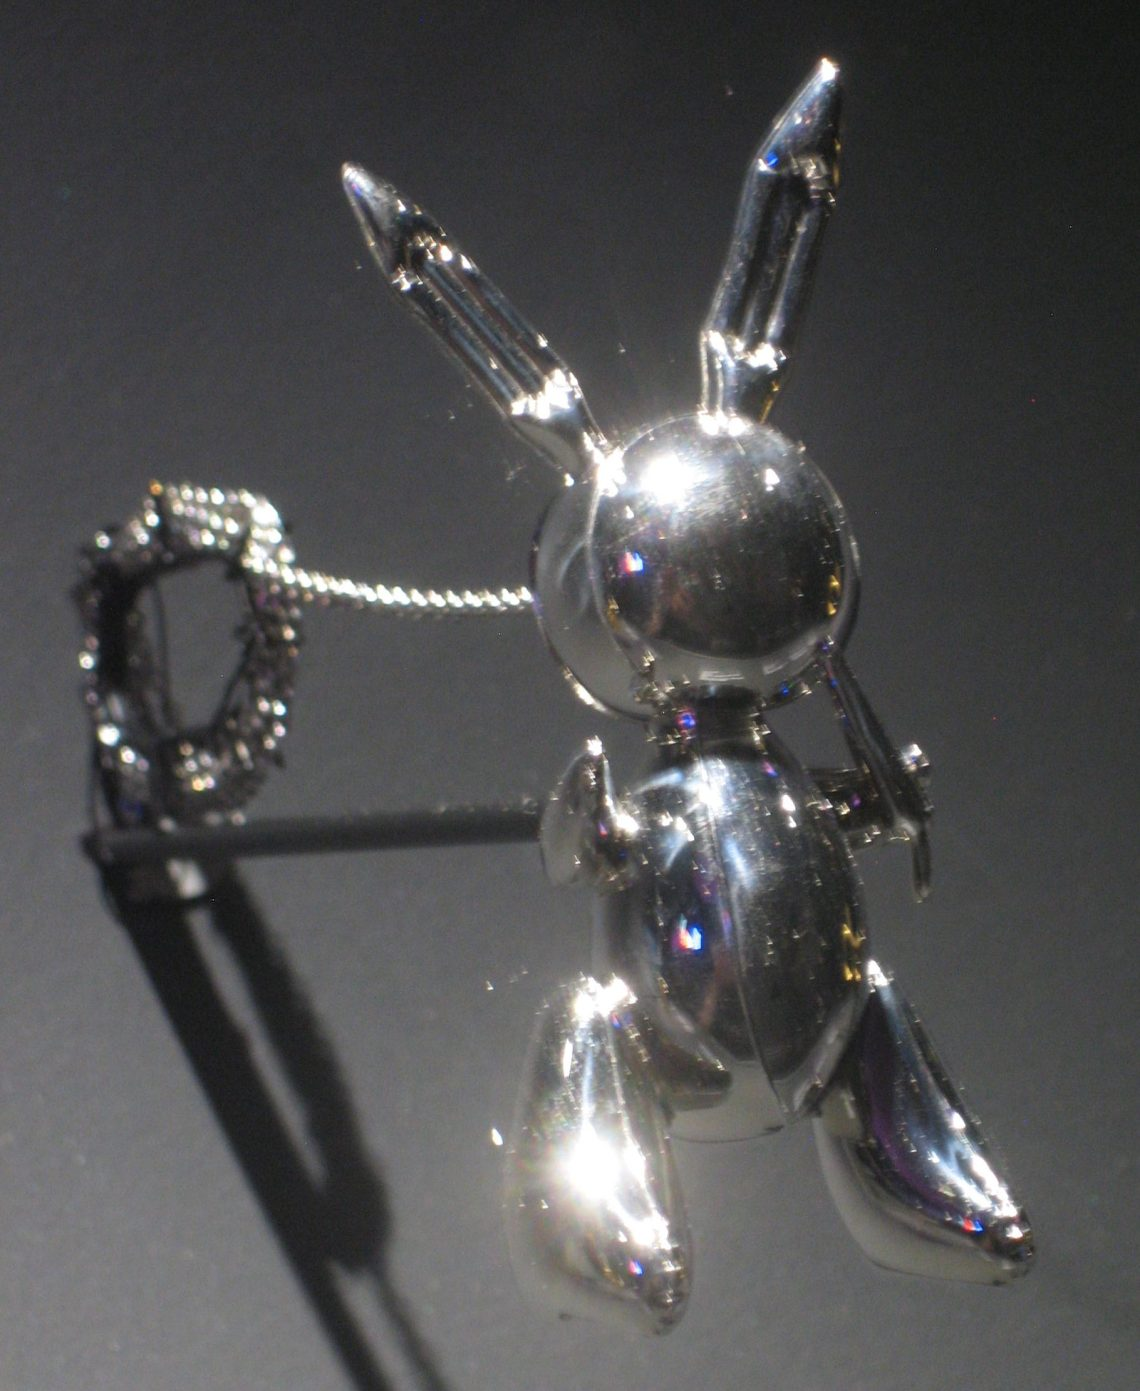 Jeff Koons, Rabbit Necklace, halssieraad, 2005-2009, 11/50. Collectie Diane Venet. Foto Esther Doornbusch, juni 2018, CC BY 4.0